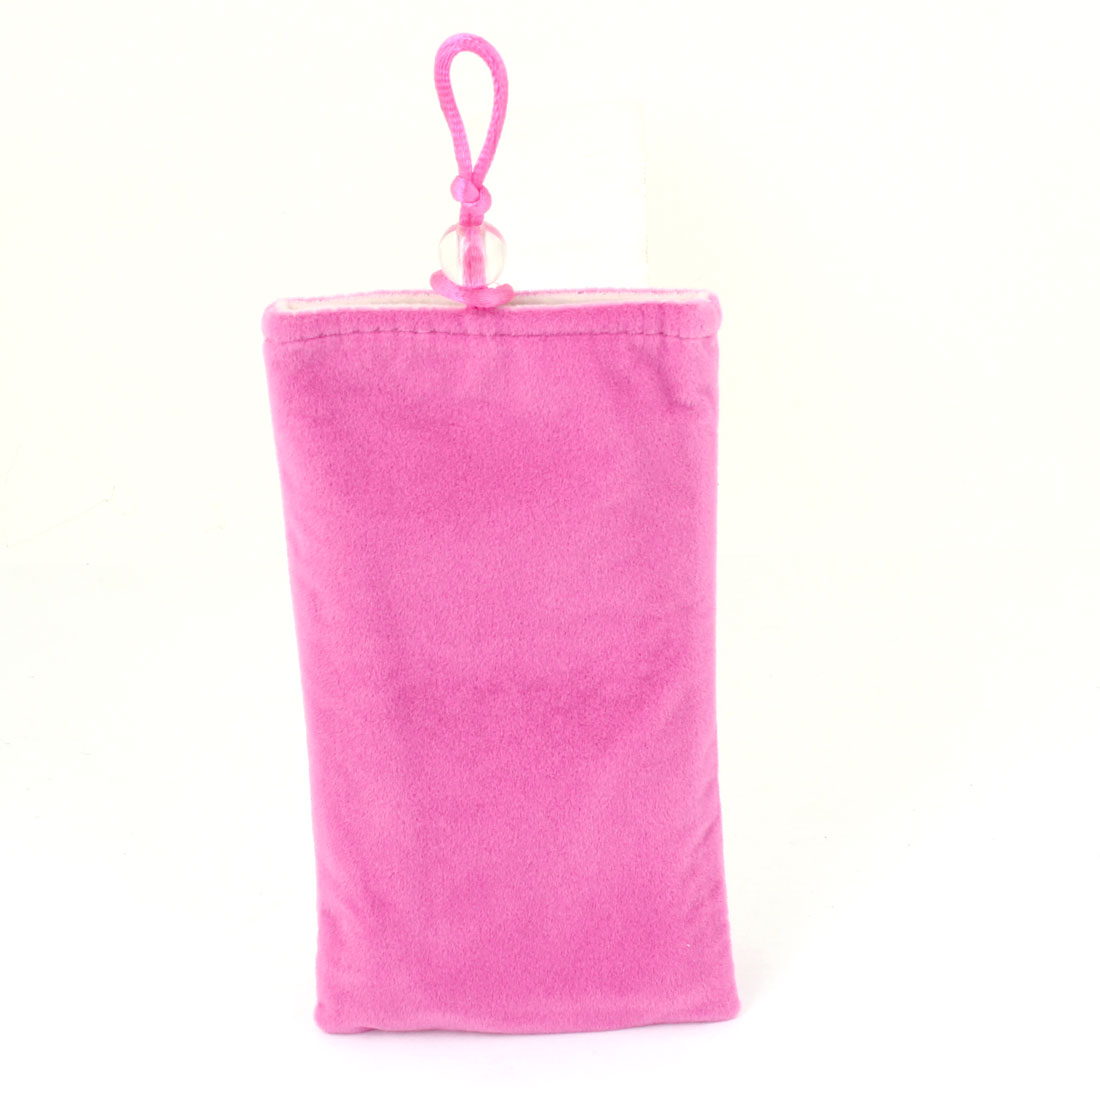 Portable Fuchsia Flannel Pouch Case for Mobile Phone